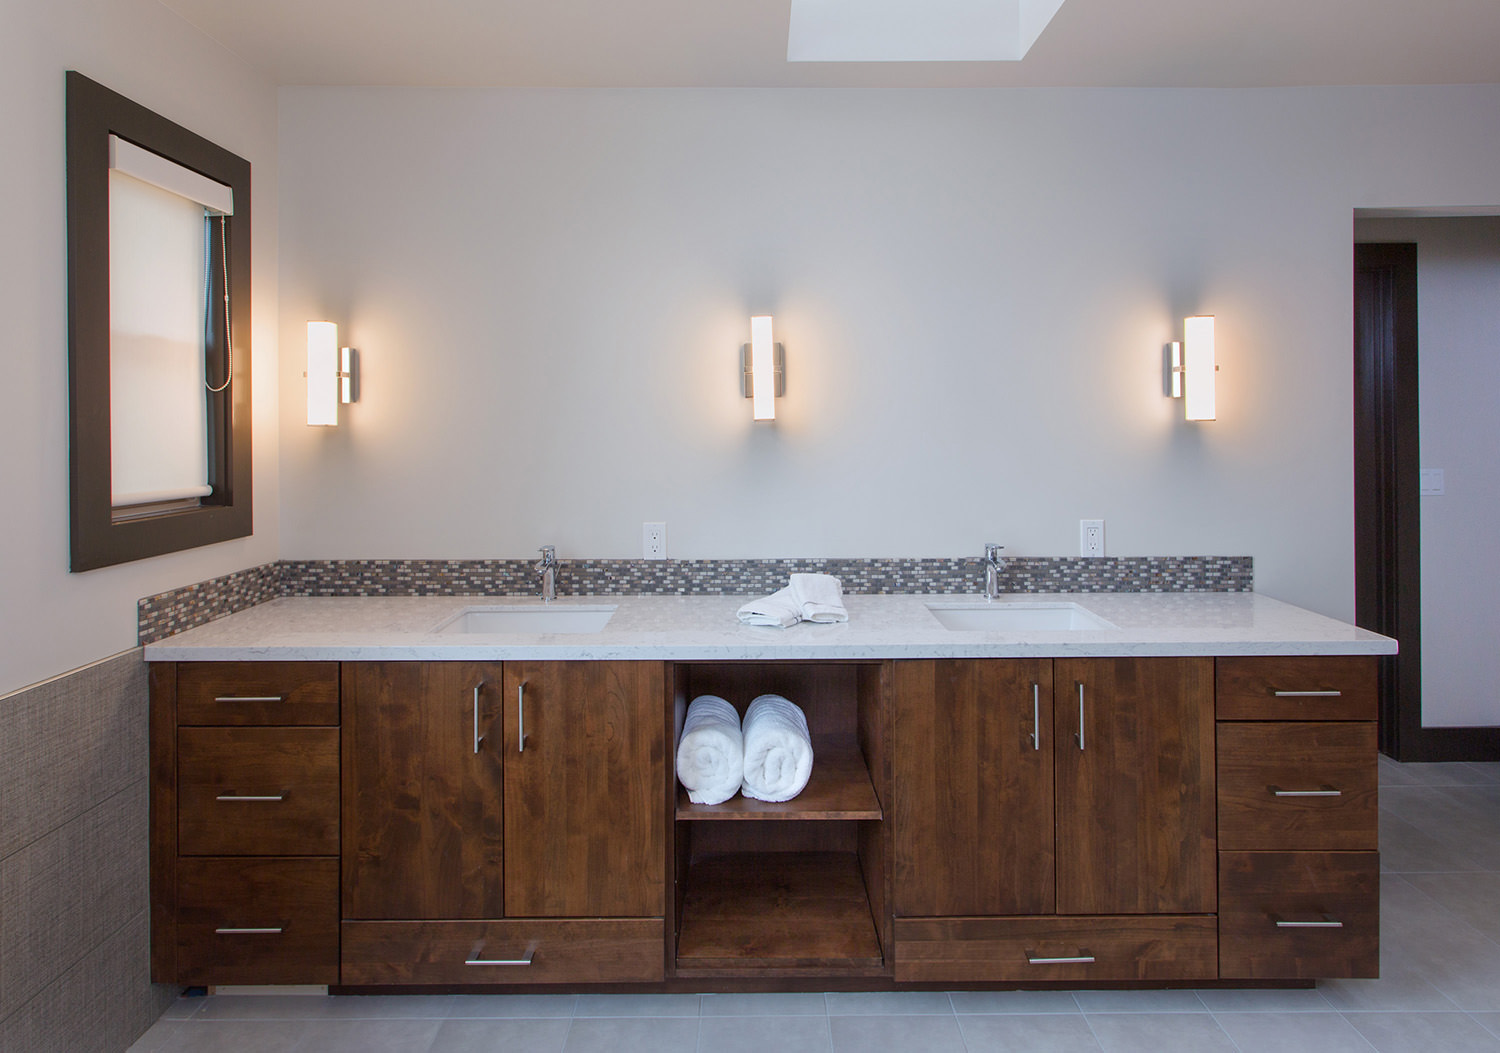 bathroom-interior-design-los-altos-california-ktj-design-co-11.jpg